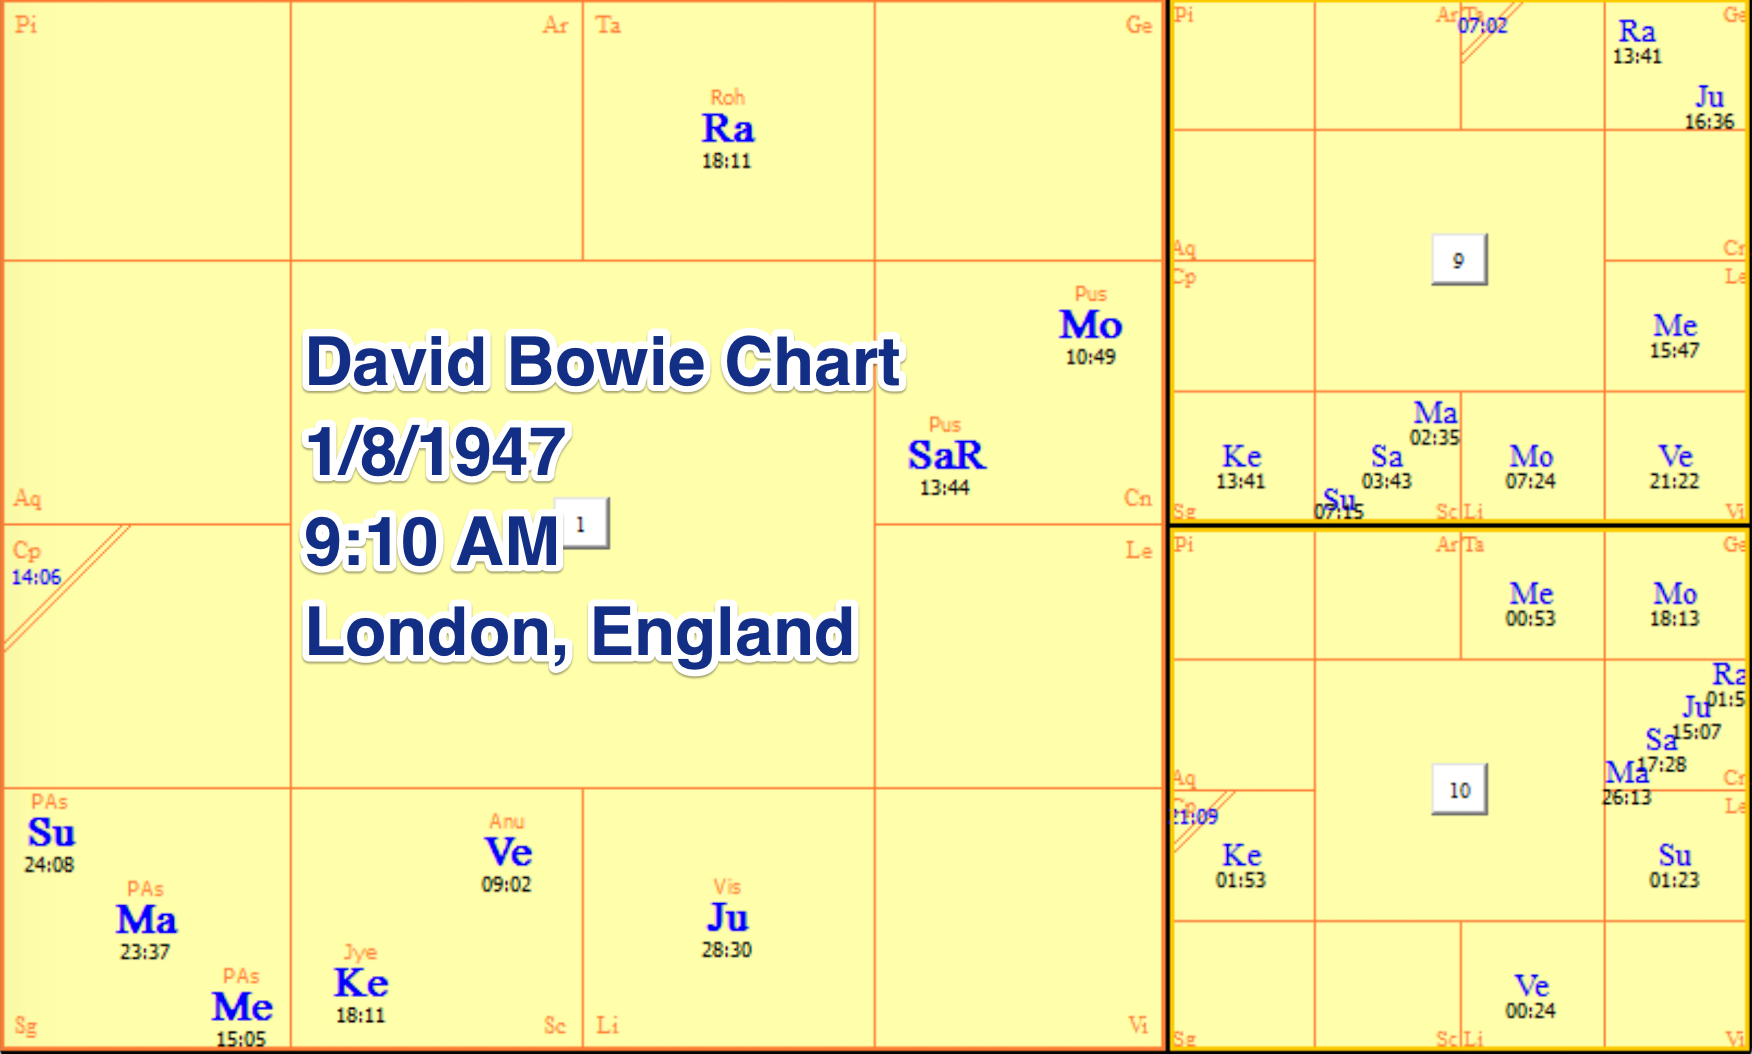 Vedic birth chart interpretation gallery chart design ideas calculate birth chart vedic gallery free any chart examples vedic astrology david bowie case study vedic nvjuhfo Images